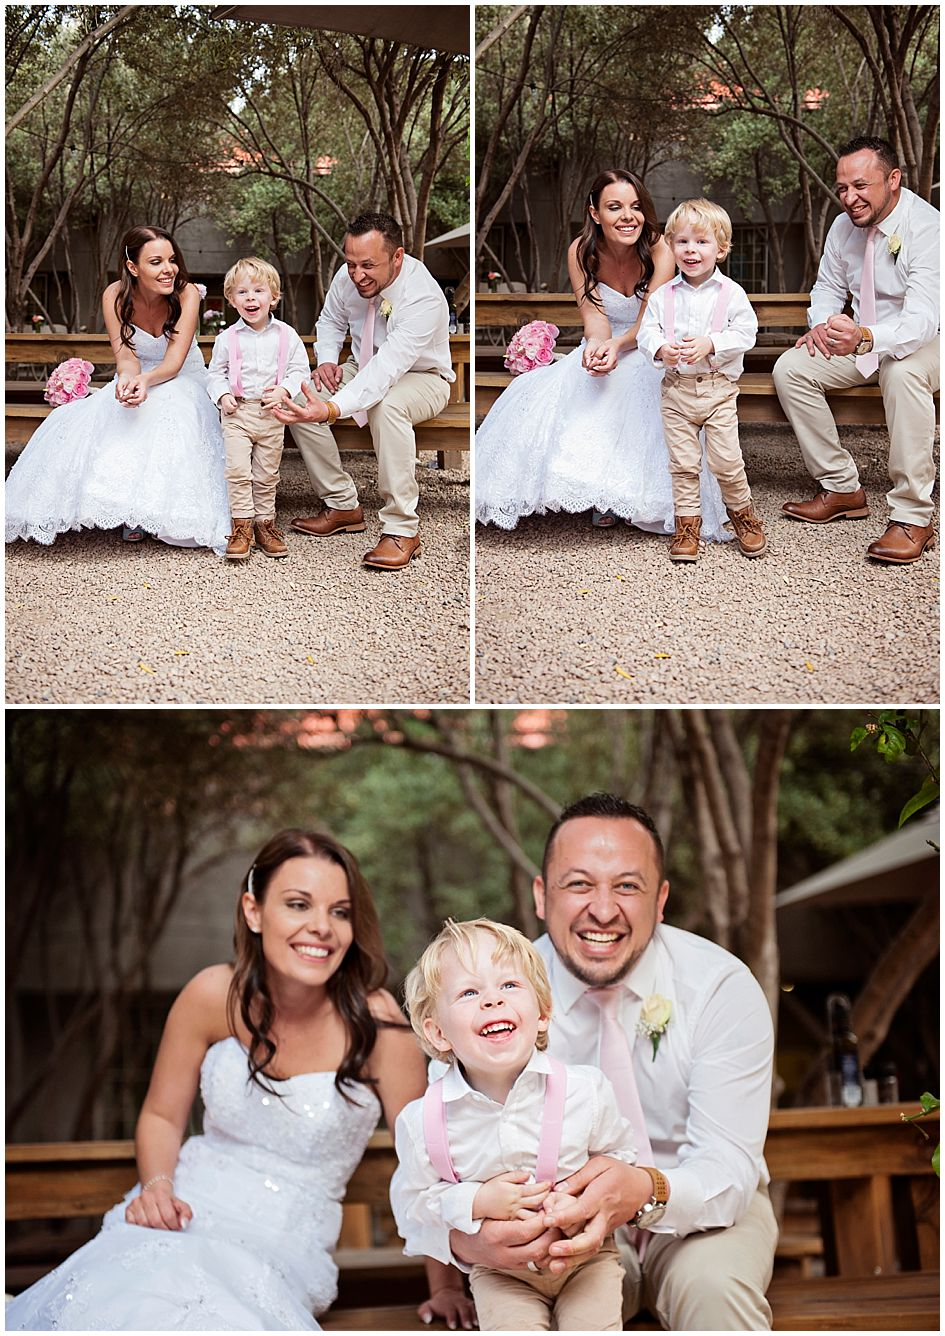 newlywed-family-photoshoot.jpg